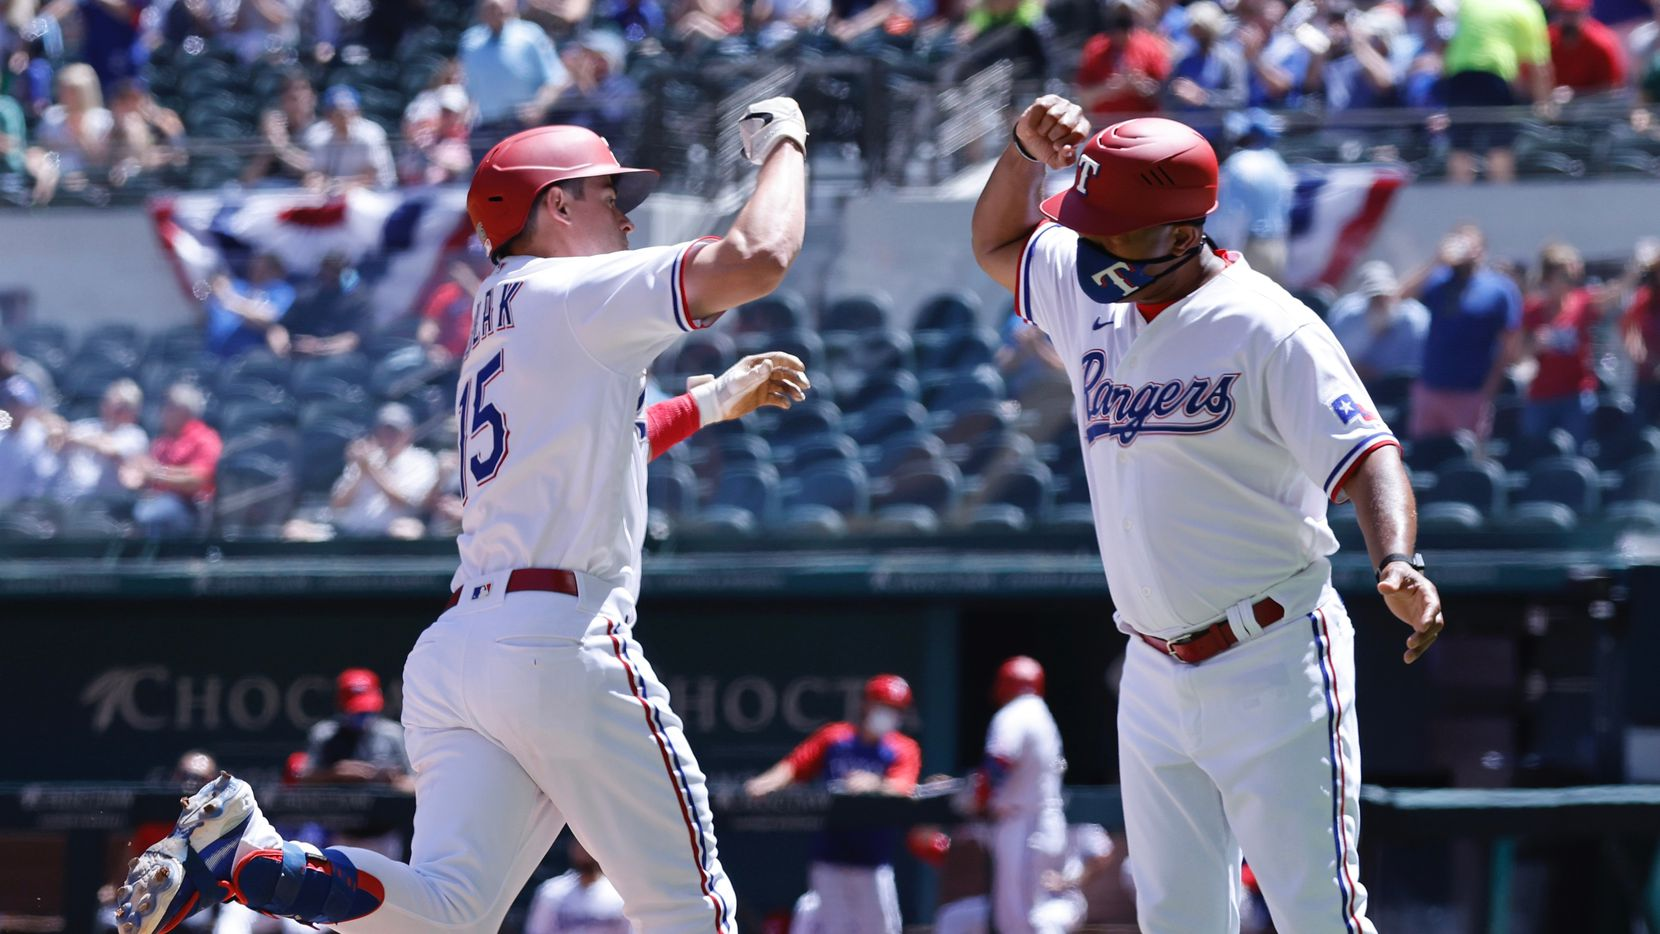 Texas Rangers Nick Solak (15) is congratulated by third base coach Tony Beasley after his second inning solo home run to right field against the Toronto Blue Jays at Globe Life Field in Arlington, Wednesday, April 8, 2021.